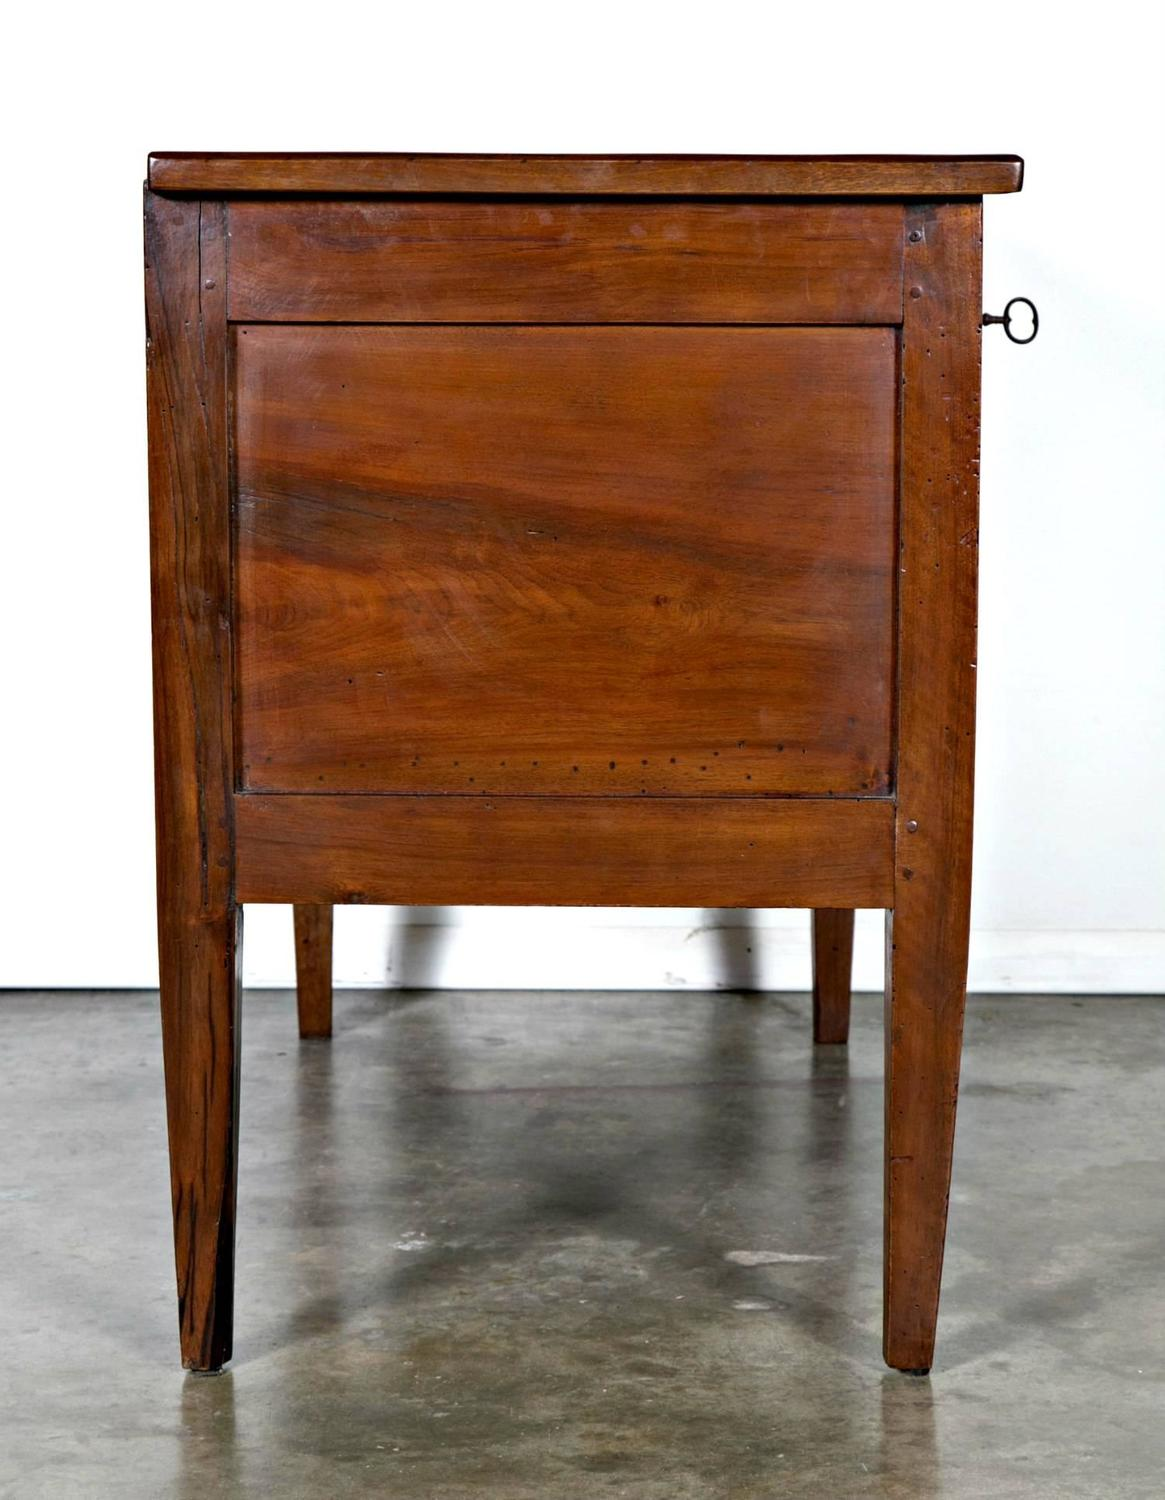 18th century period walnut louis xvi petite commode for sale at 1stdibs. Black Bedroom Furniture Sets. Home Design Ideas